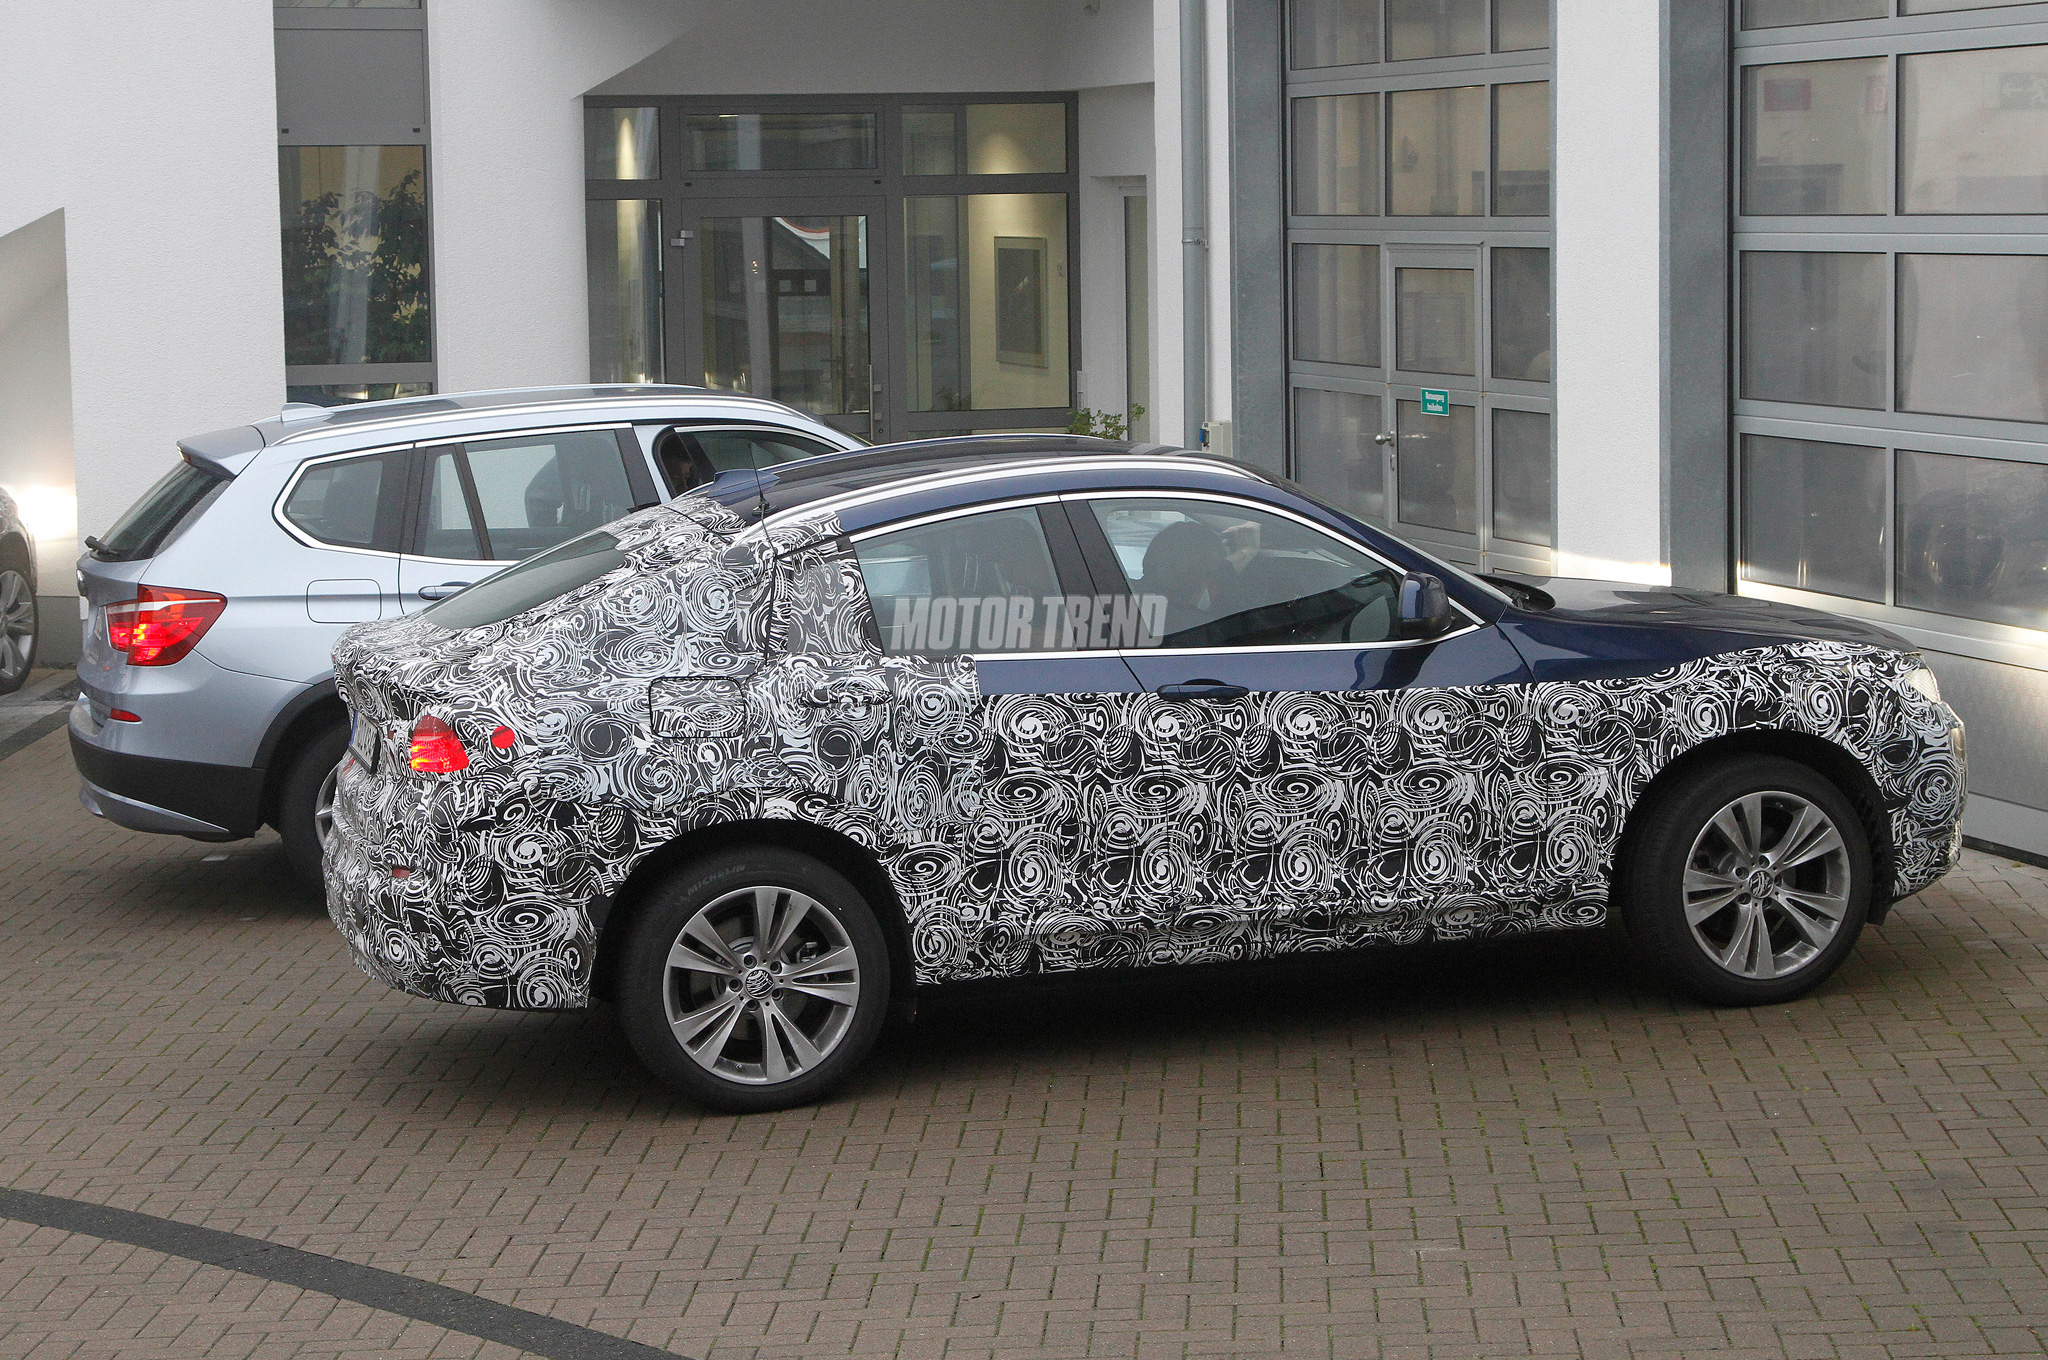 2015 BMW X4 Spied Testing With X3 Interior Partially Revealed